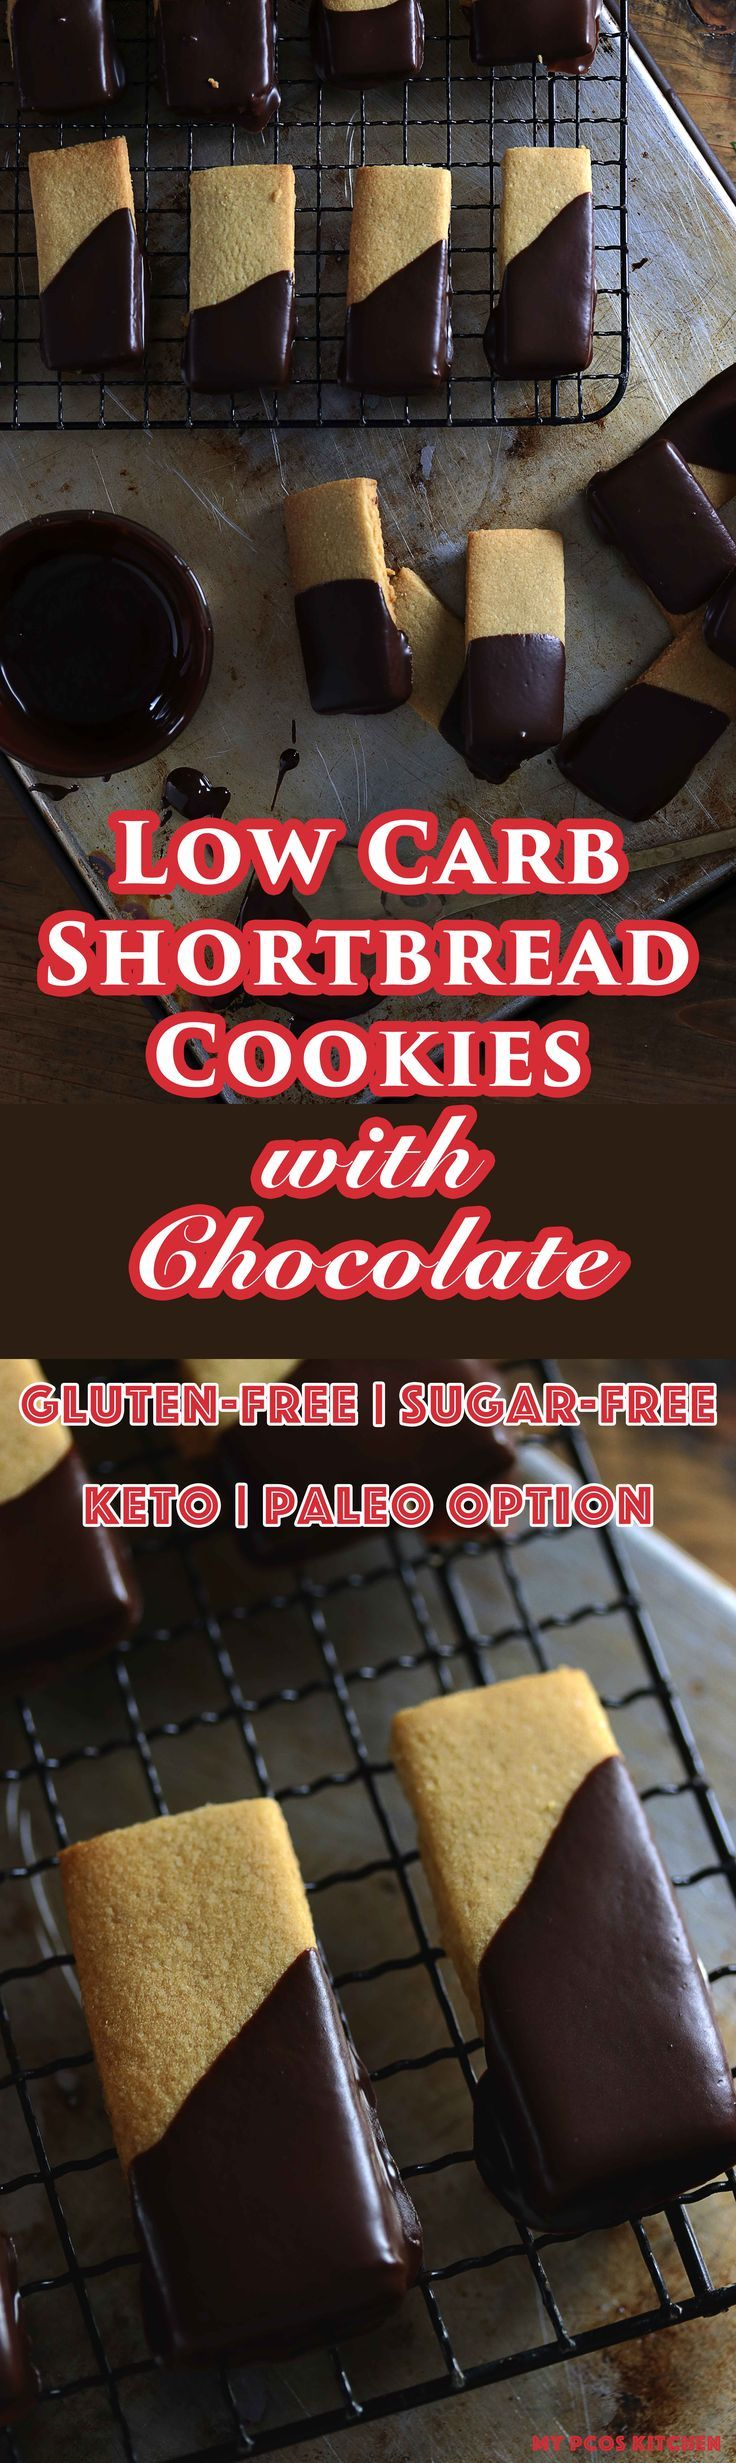 Shortbread Cookies with Chocolate